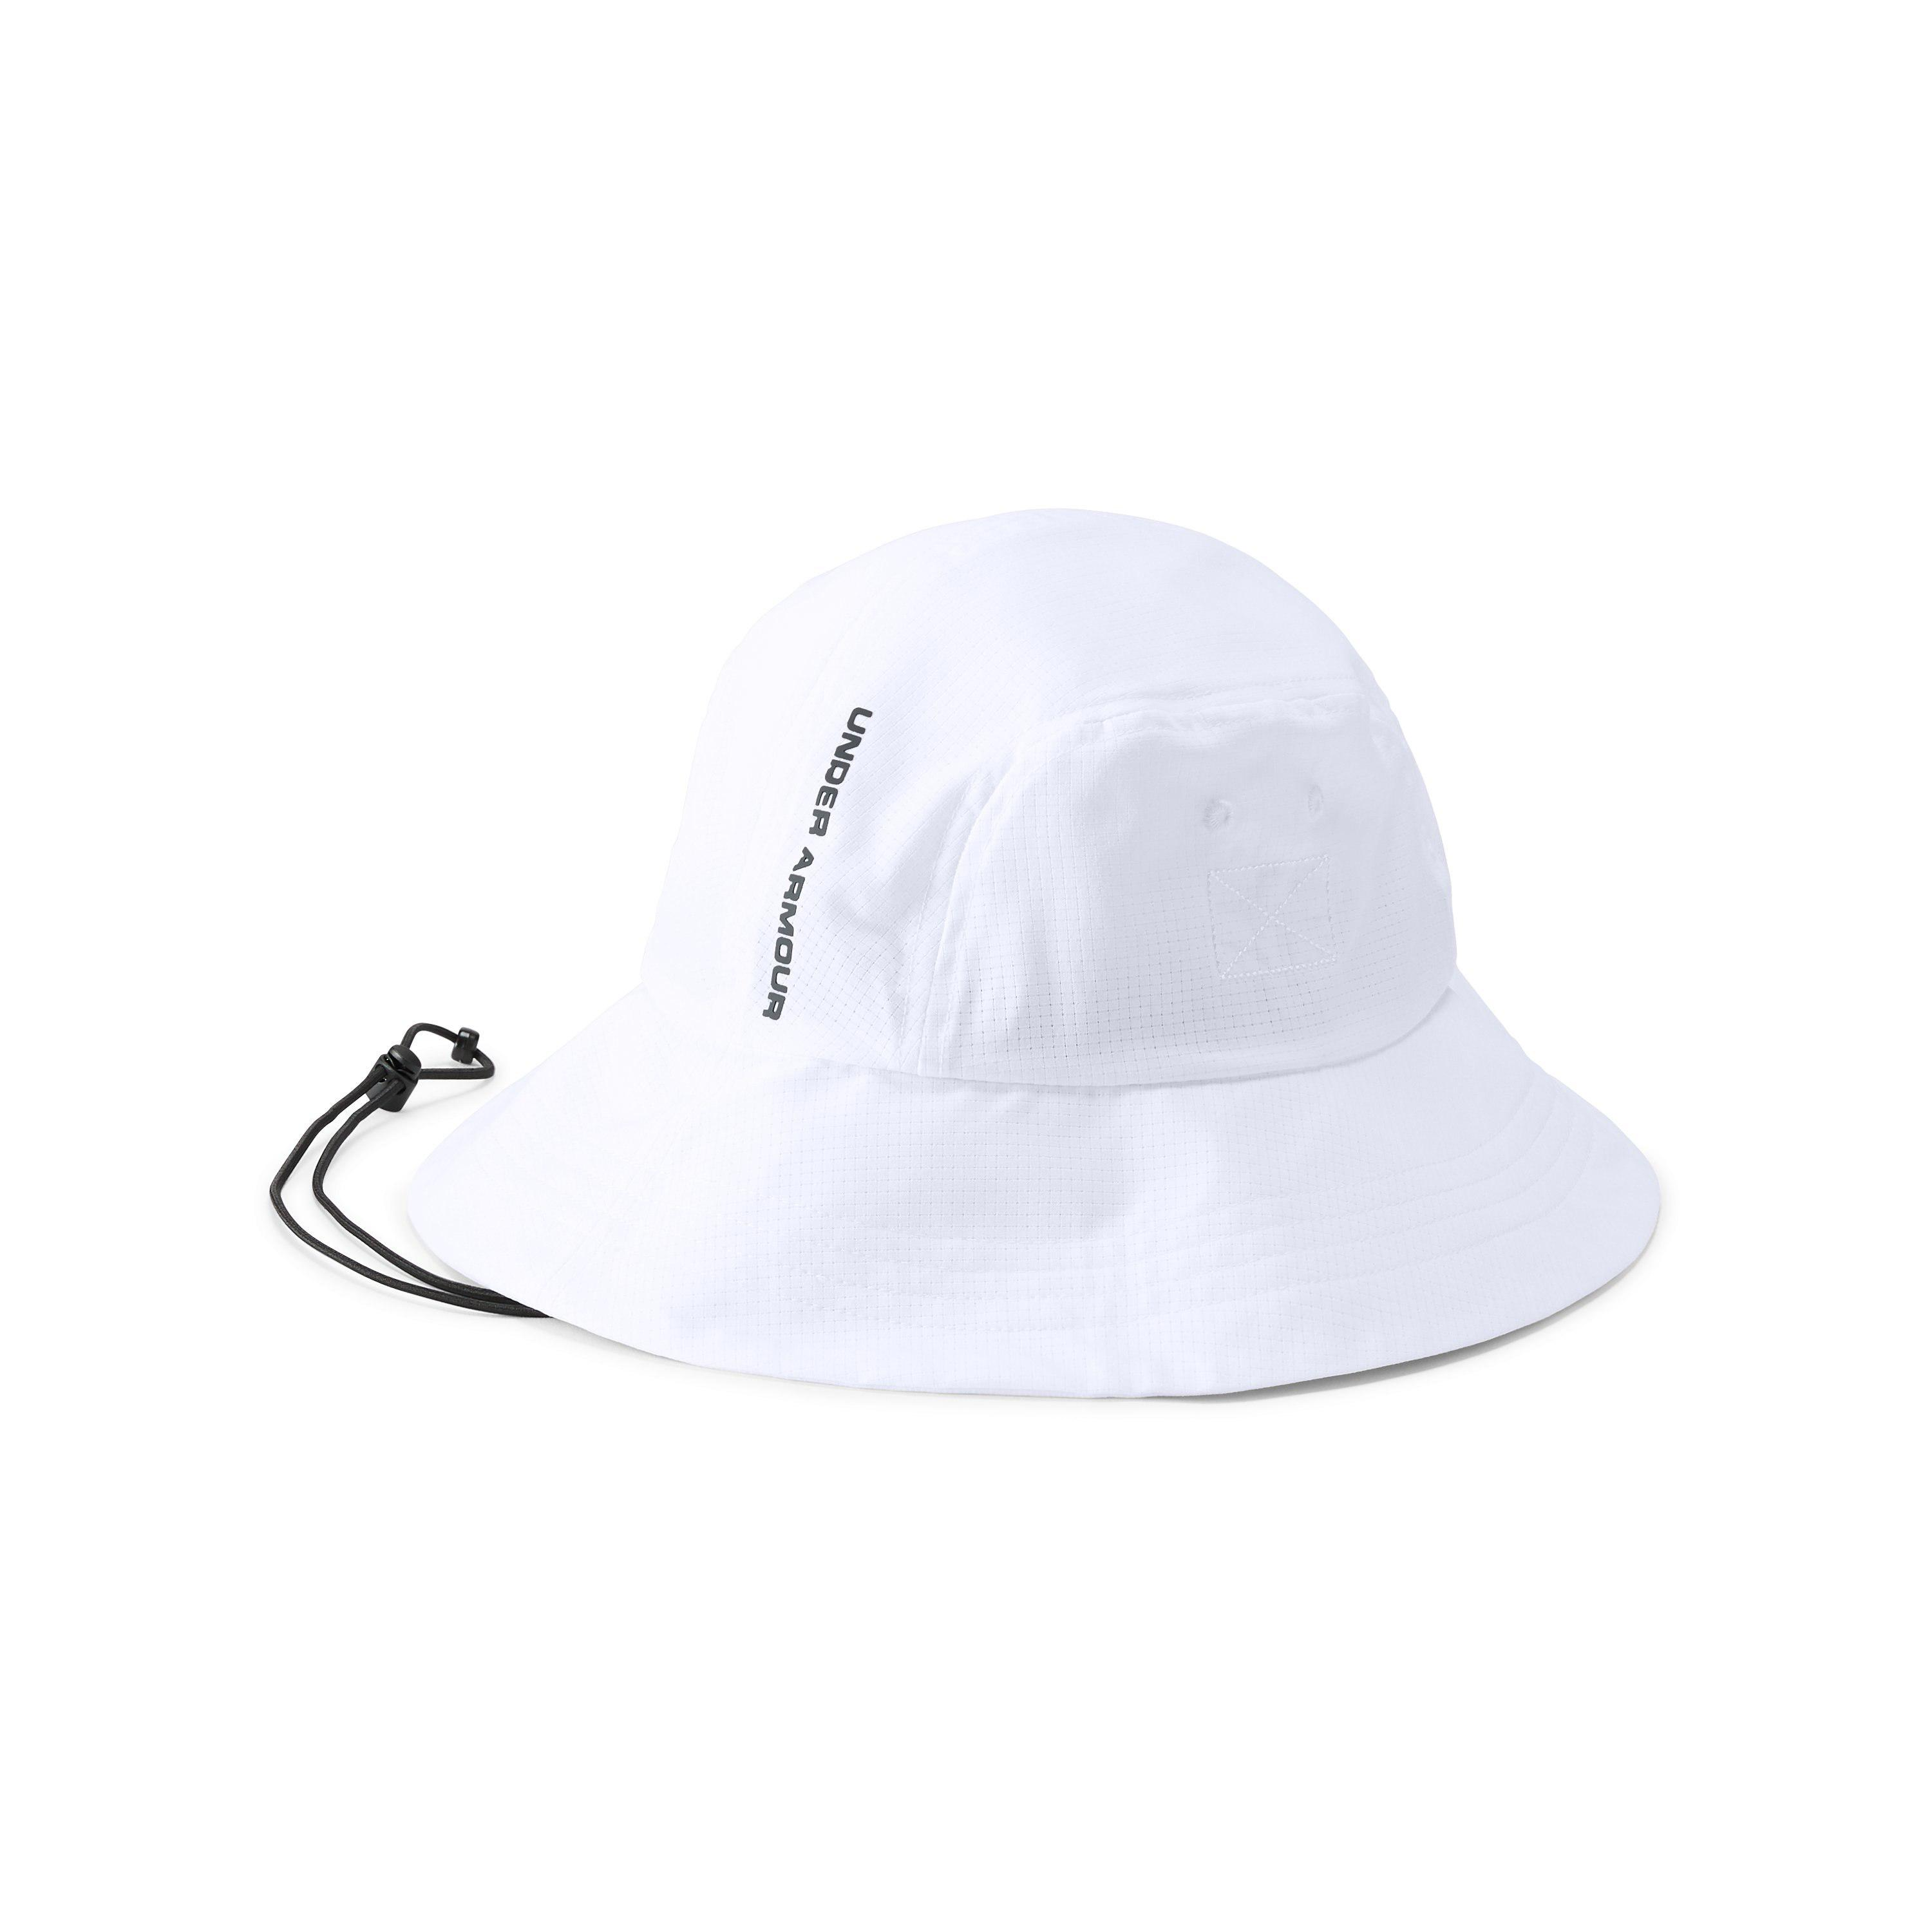 3947ad9ba92 ... clearance lyst under armour mens ua armourventtm bucket 2.0 hat in white  59e2b 163ec